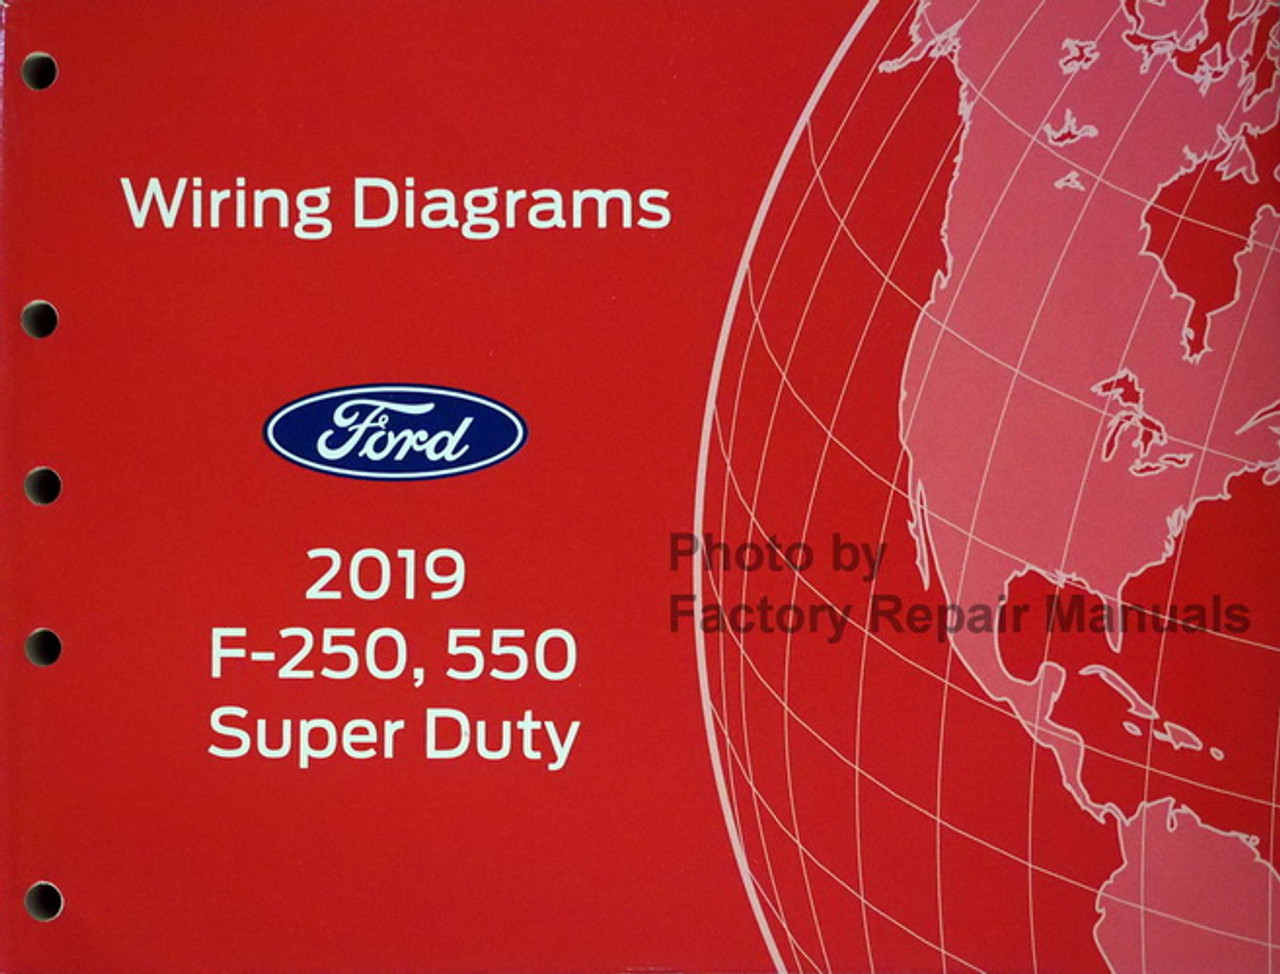 2019 Ford F250 F350 F450 F550 Electrical Wiring Diagrams Original - Factory  Repair Manuals | Ford F250 Wiring Diagram |  | Factory Repair Manuals